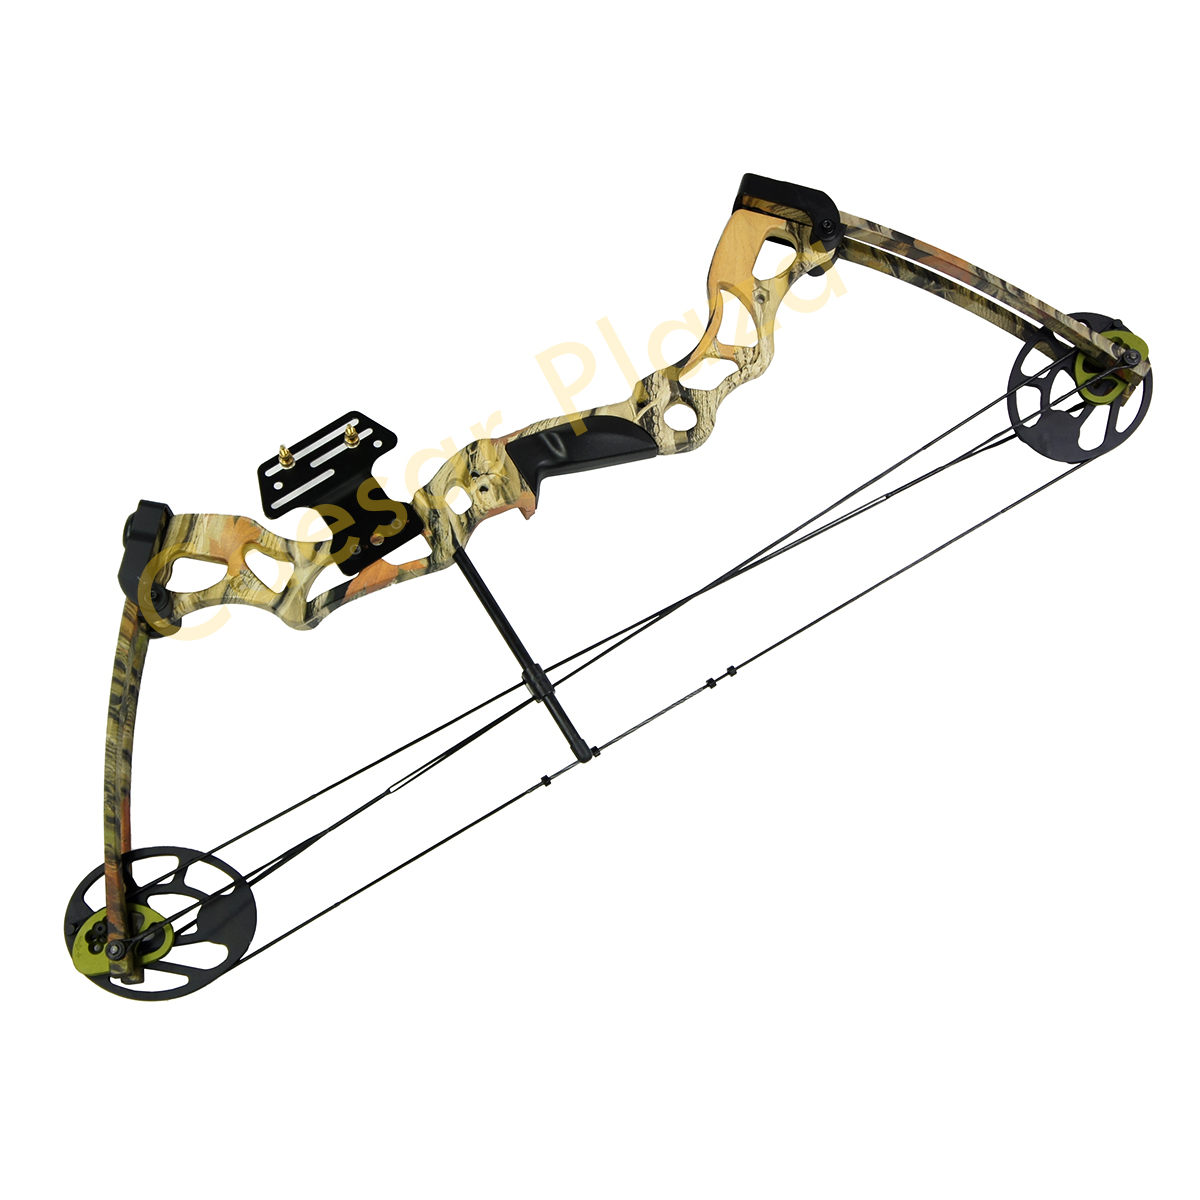 40-70-lb-Black-Green-Tree-Camouflage-Camo-Archery-Hunting-Compound-Bow-75-55 thumbnail 8